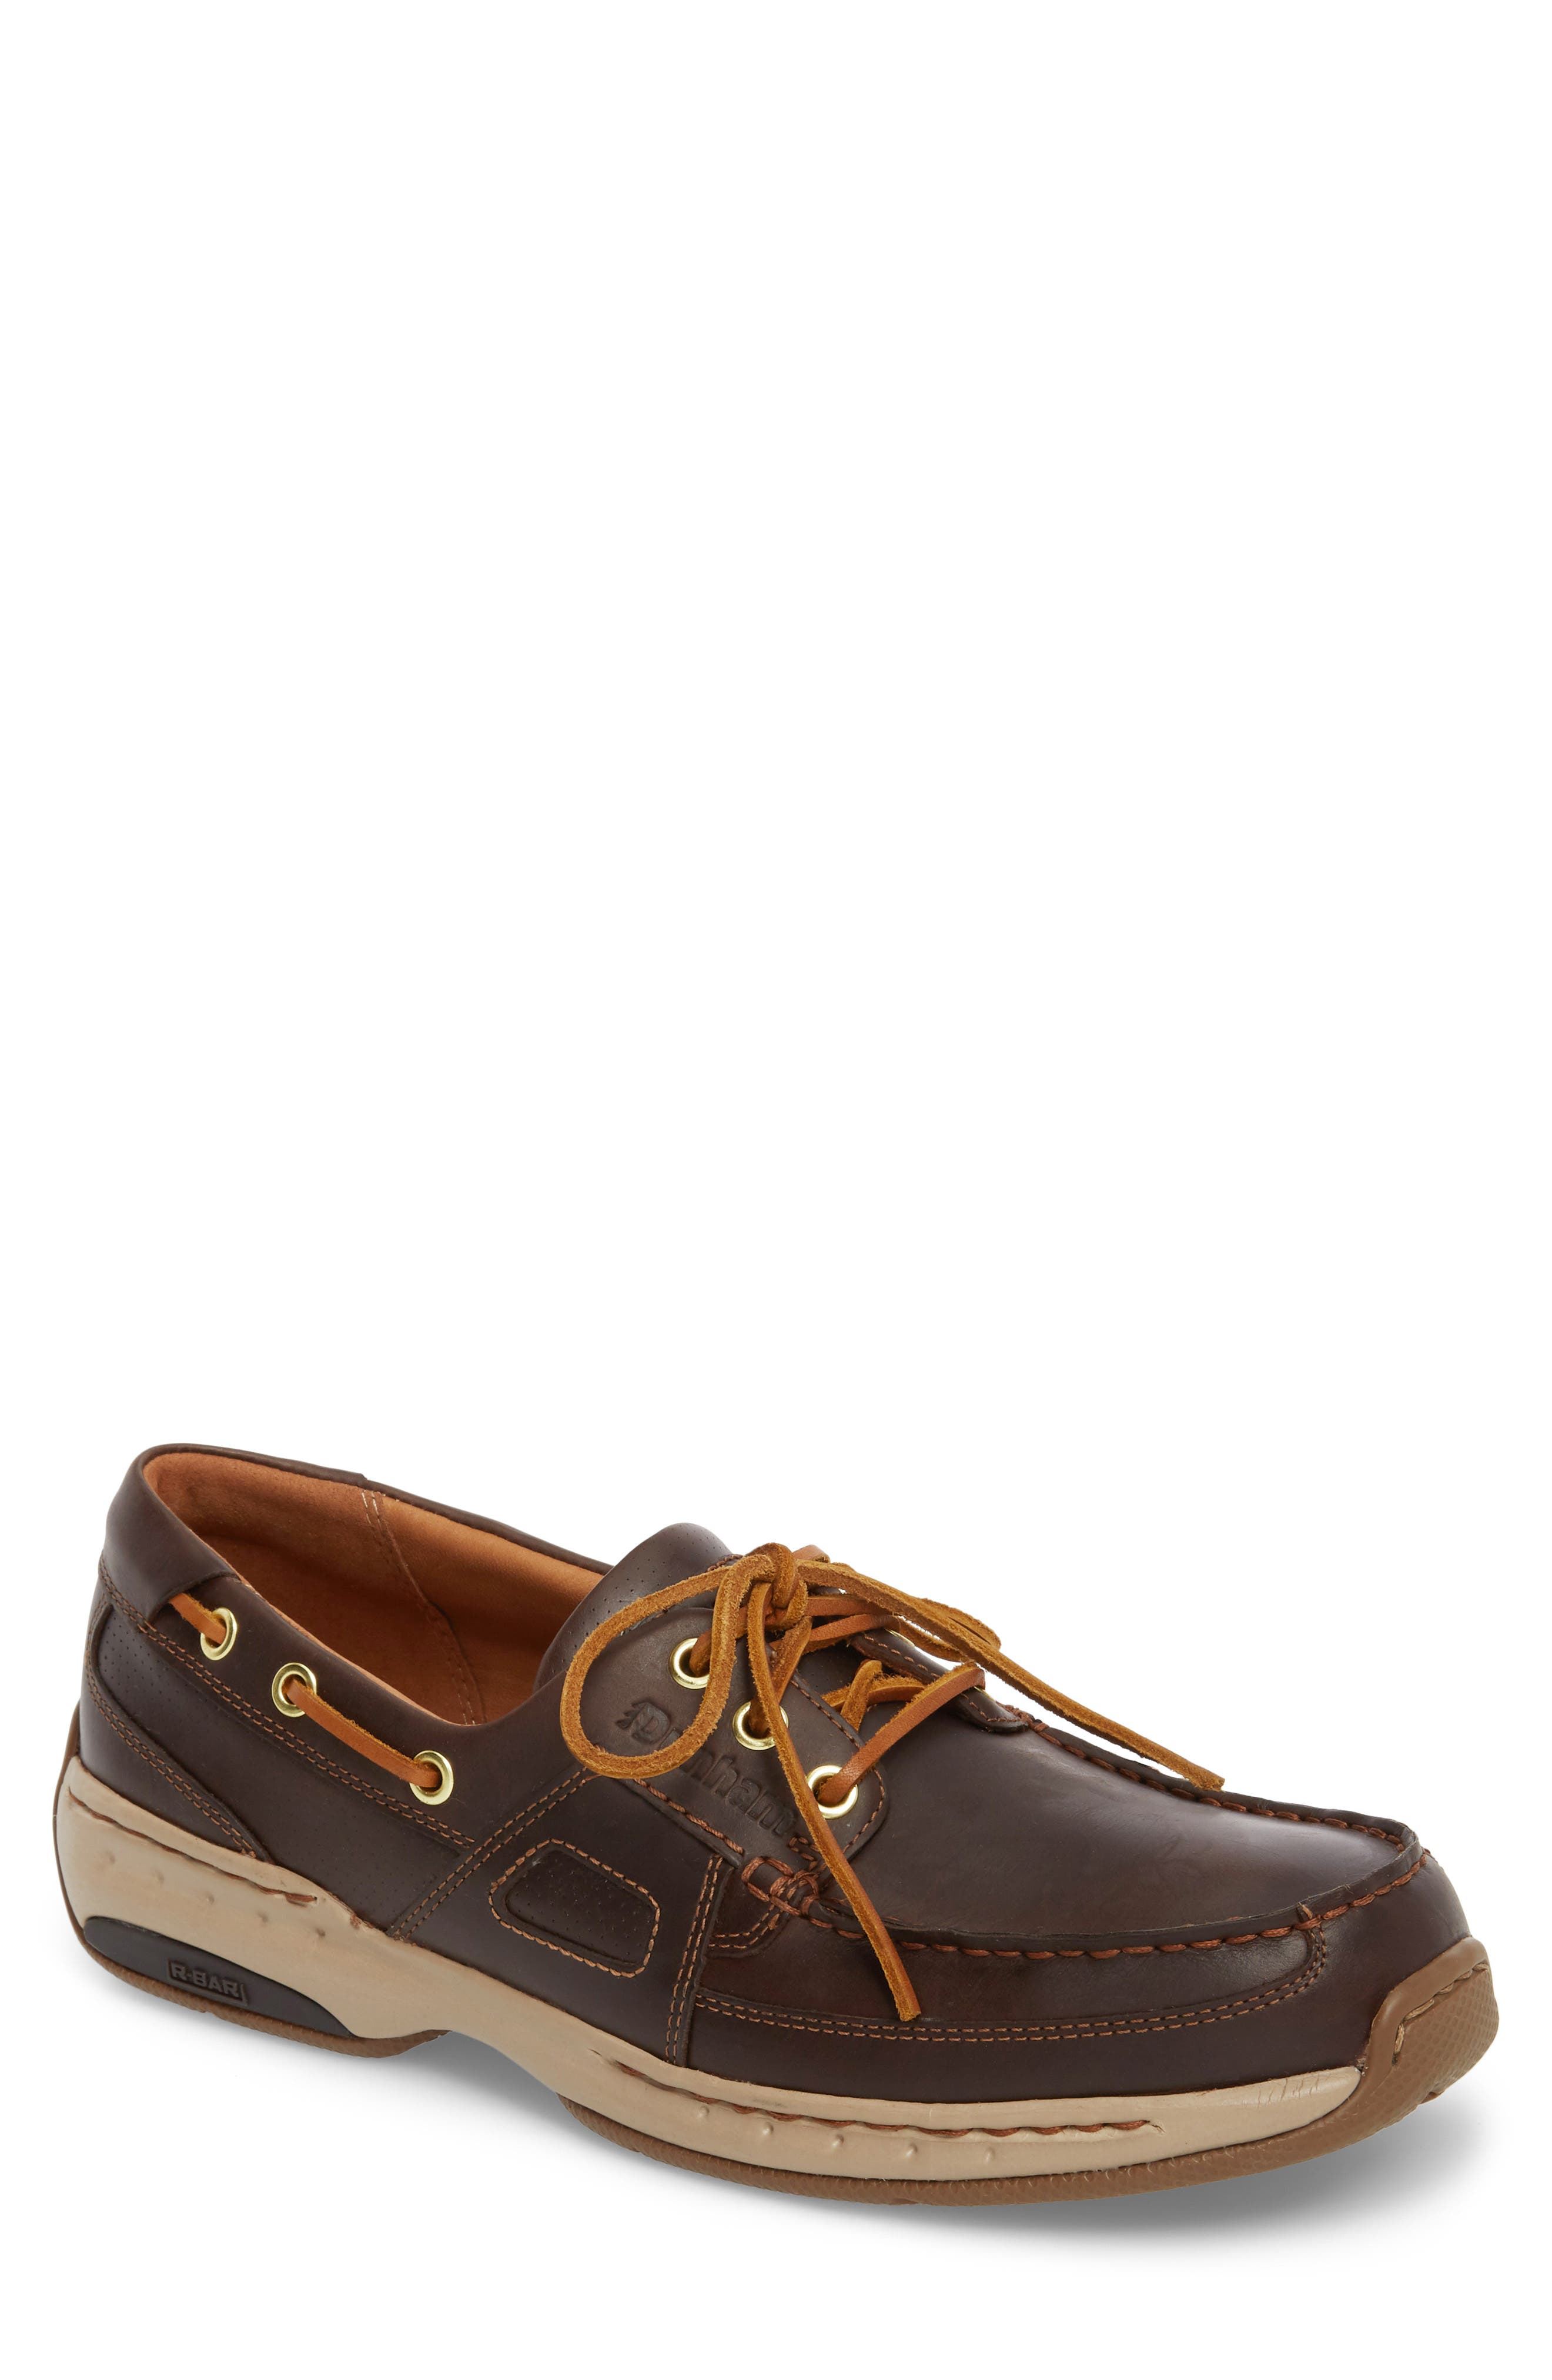 LTD Water Resistant Boat Shoe,                             Main thumbnail 1, color,                             TAN LEATHER